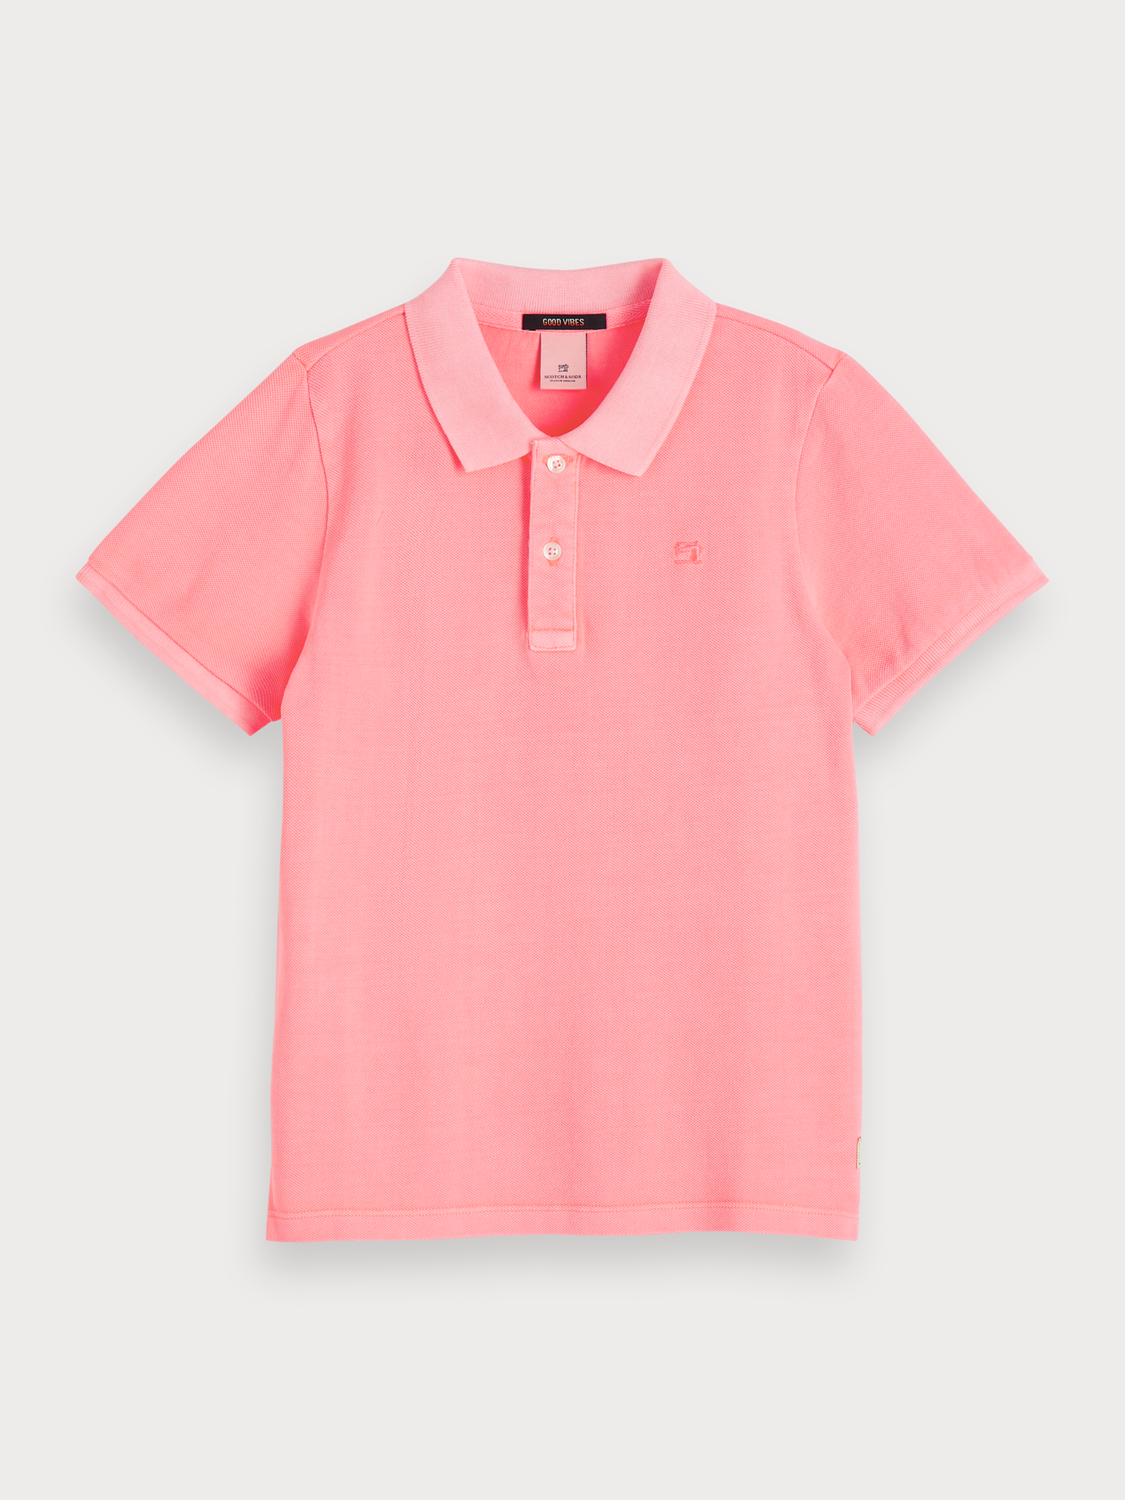 Boys Garment dyed polo